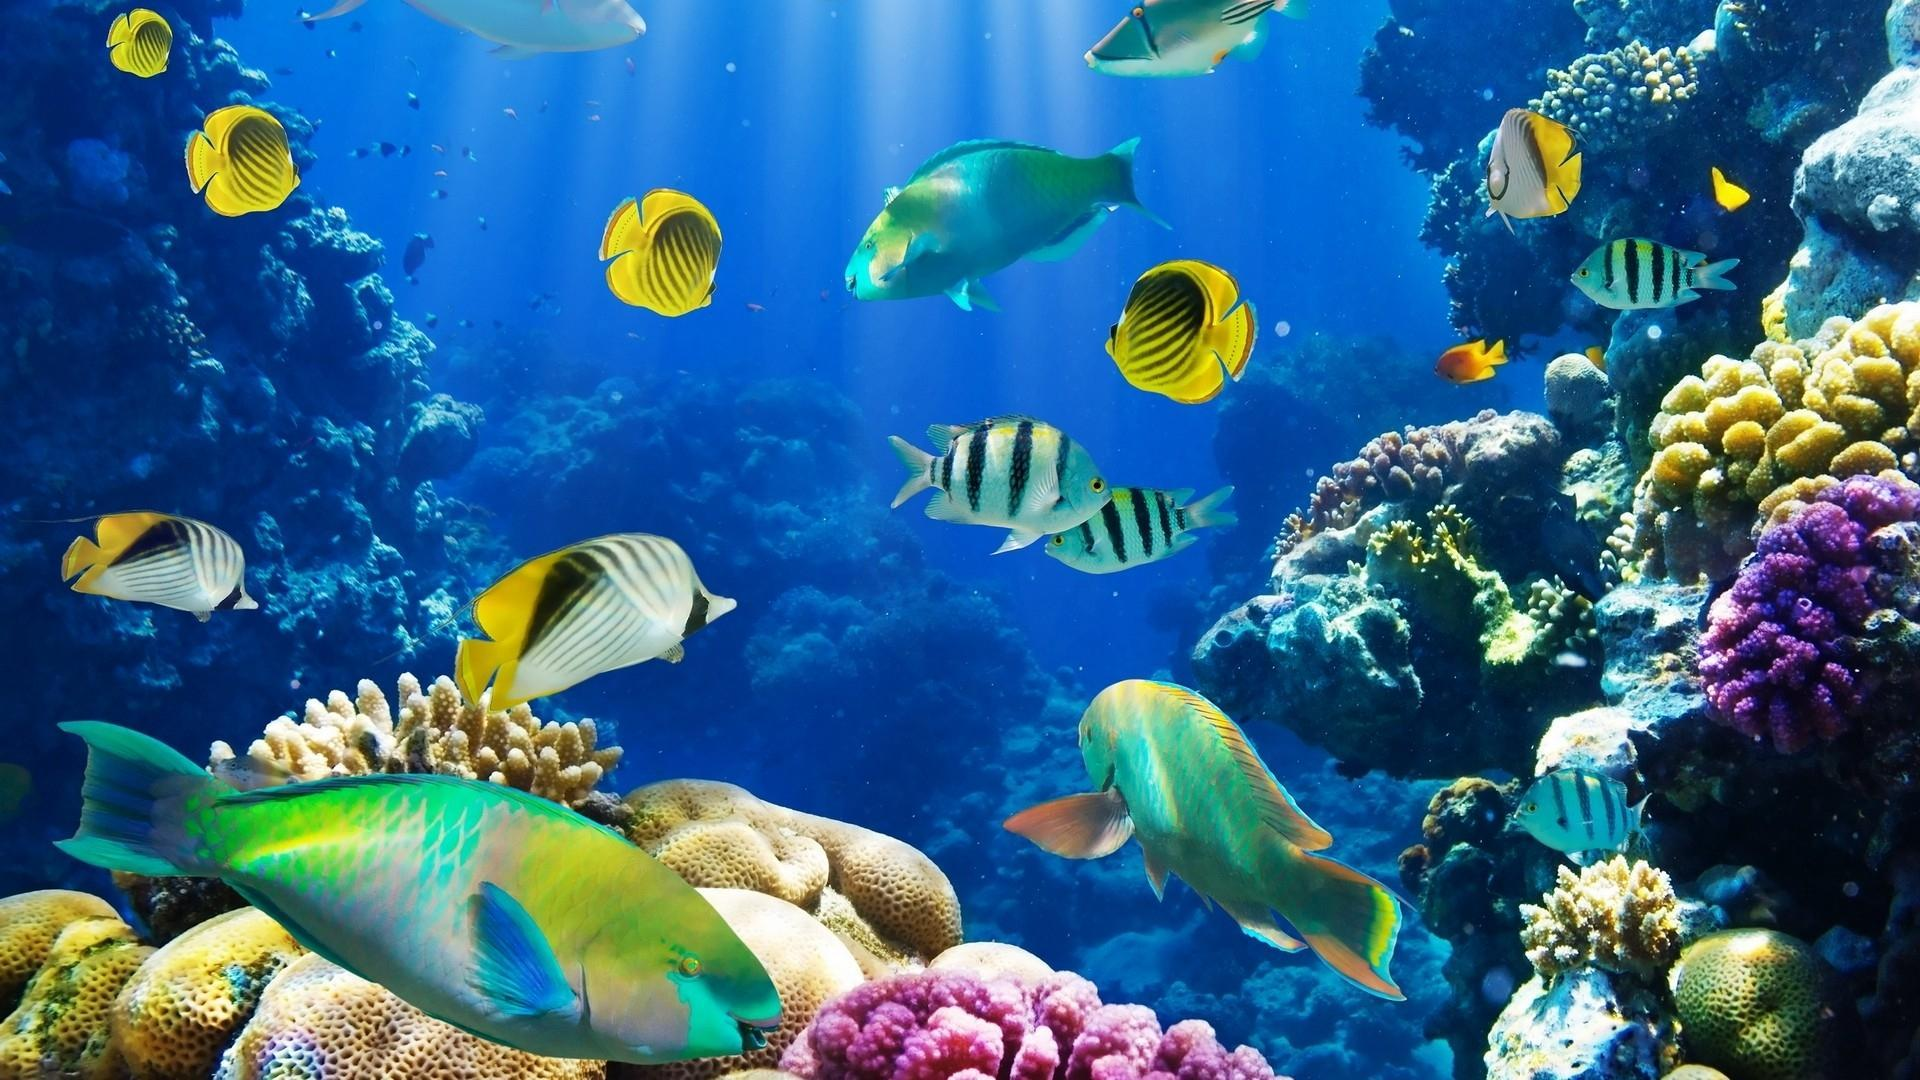 Wallpaper download on life - Hd Black White Animals Fish Sealife Hd Resolution Wallpaper